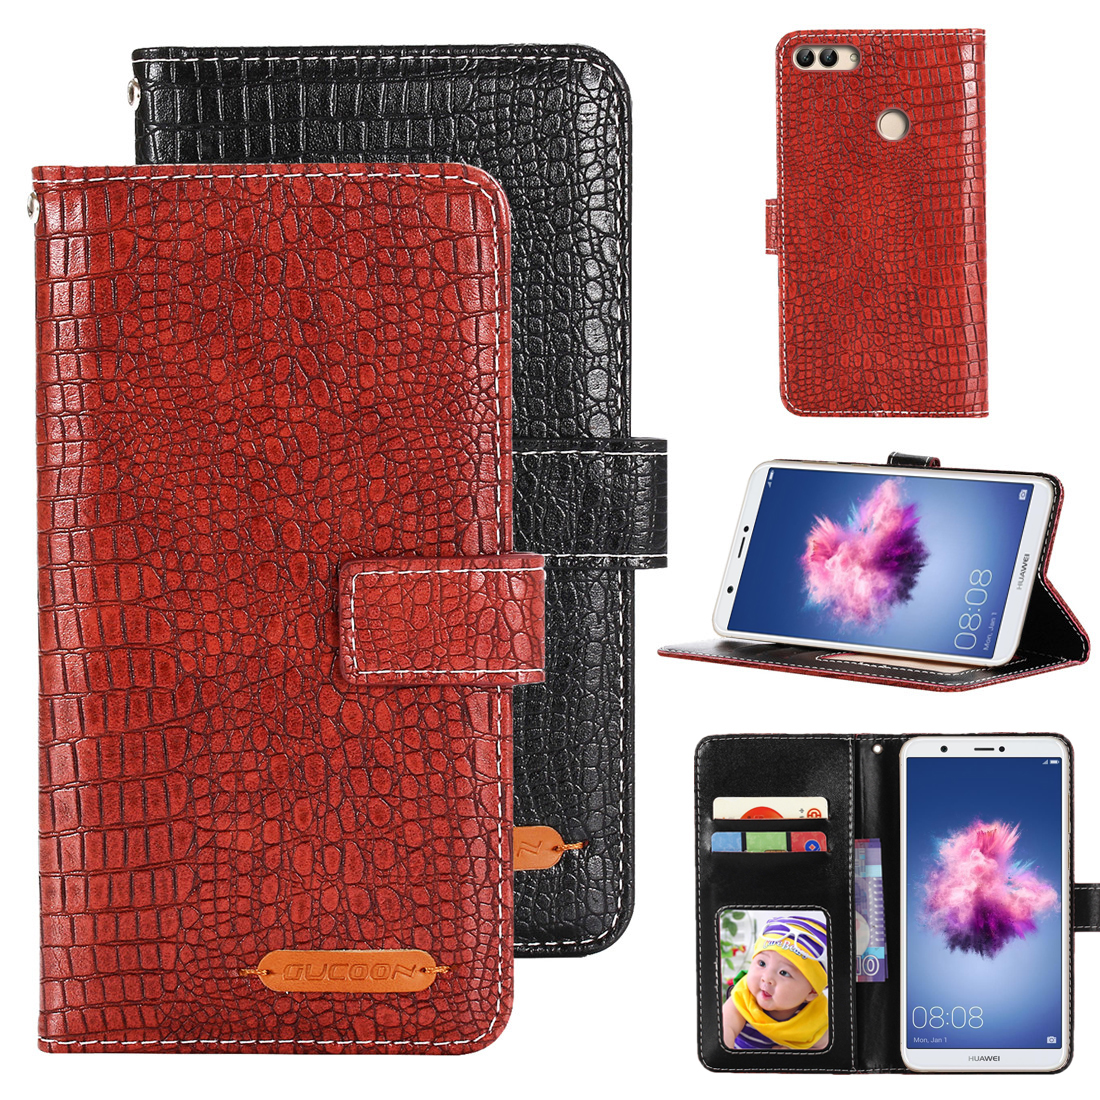 GUCOON Crocodile Wallet for Huawei <font><b>P</b></font> <font><b>Smart</b></font> PSmart Enjoy 7S Case Cover Luxury PU Leather Phone Cover Bag Quality Hand Purse image